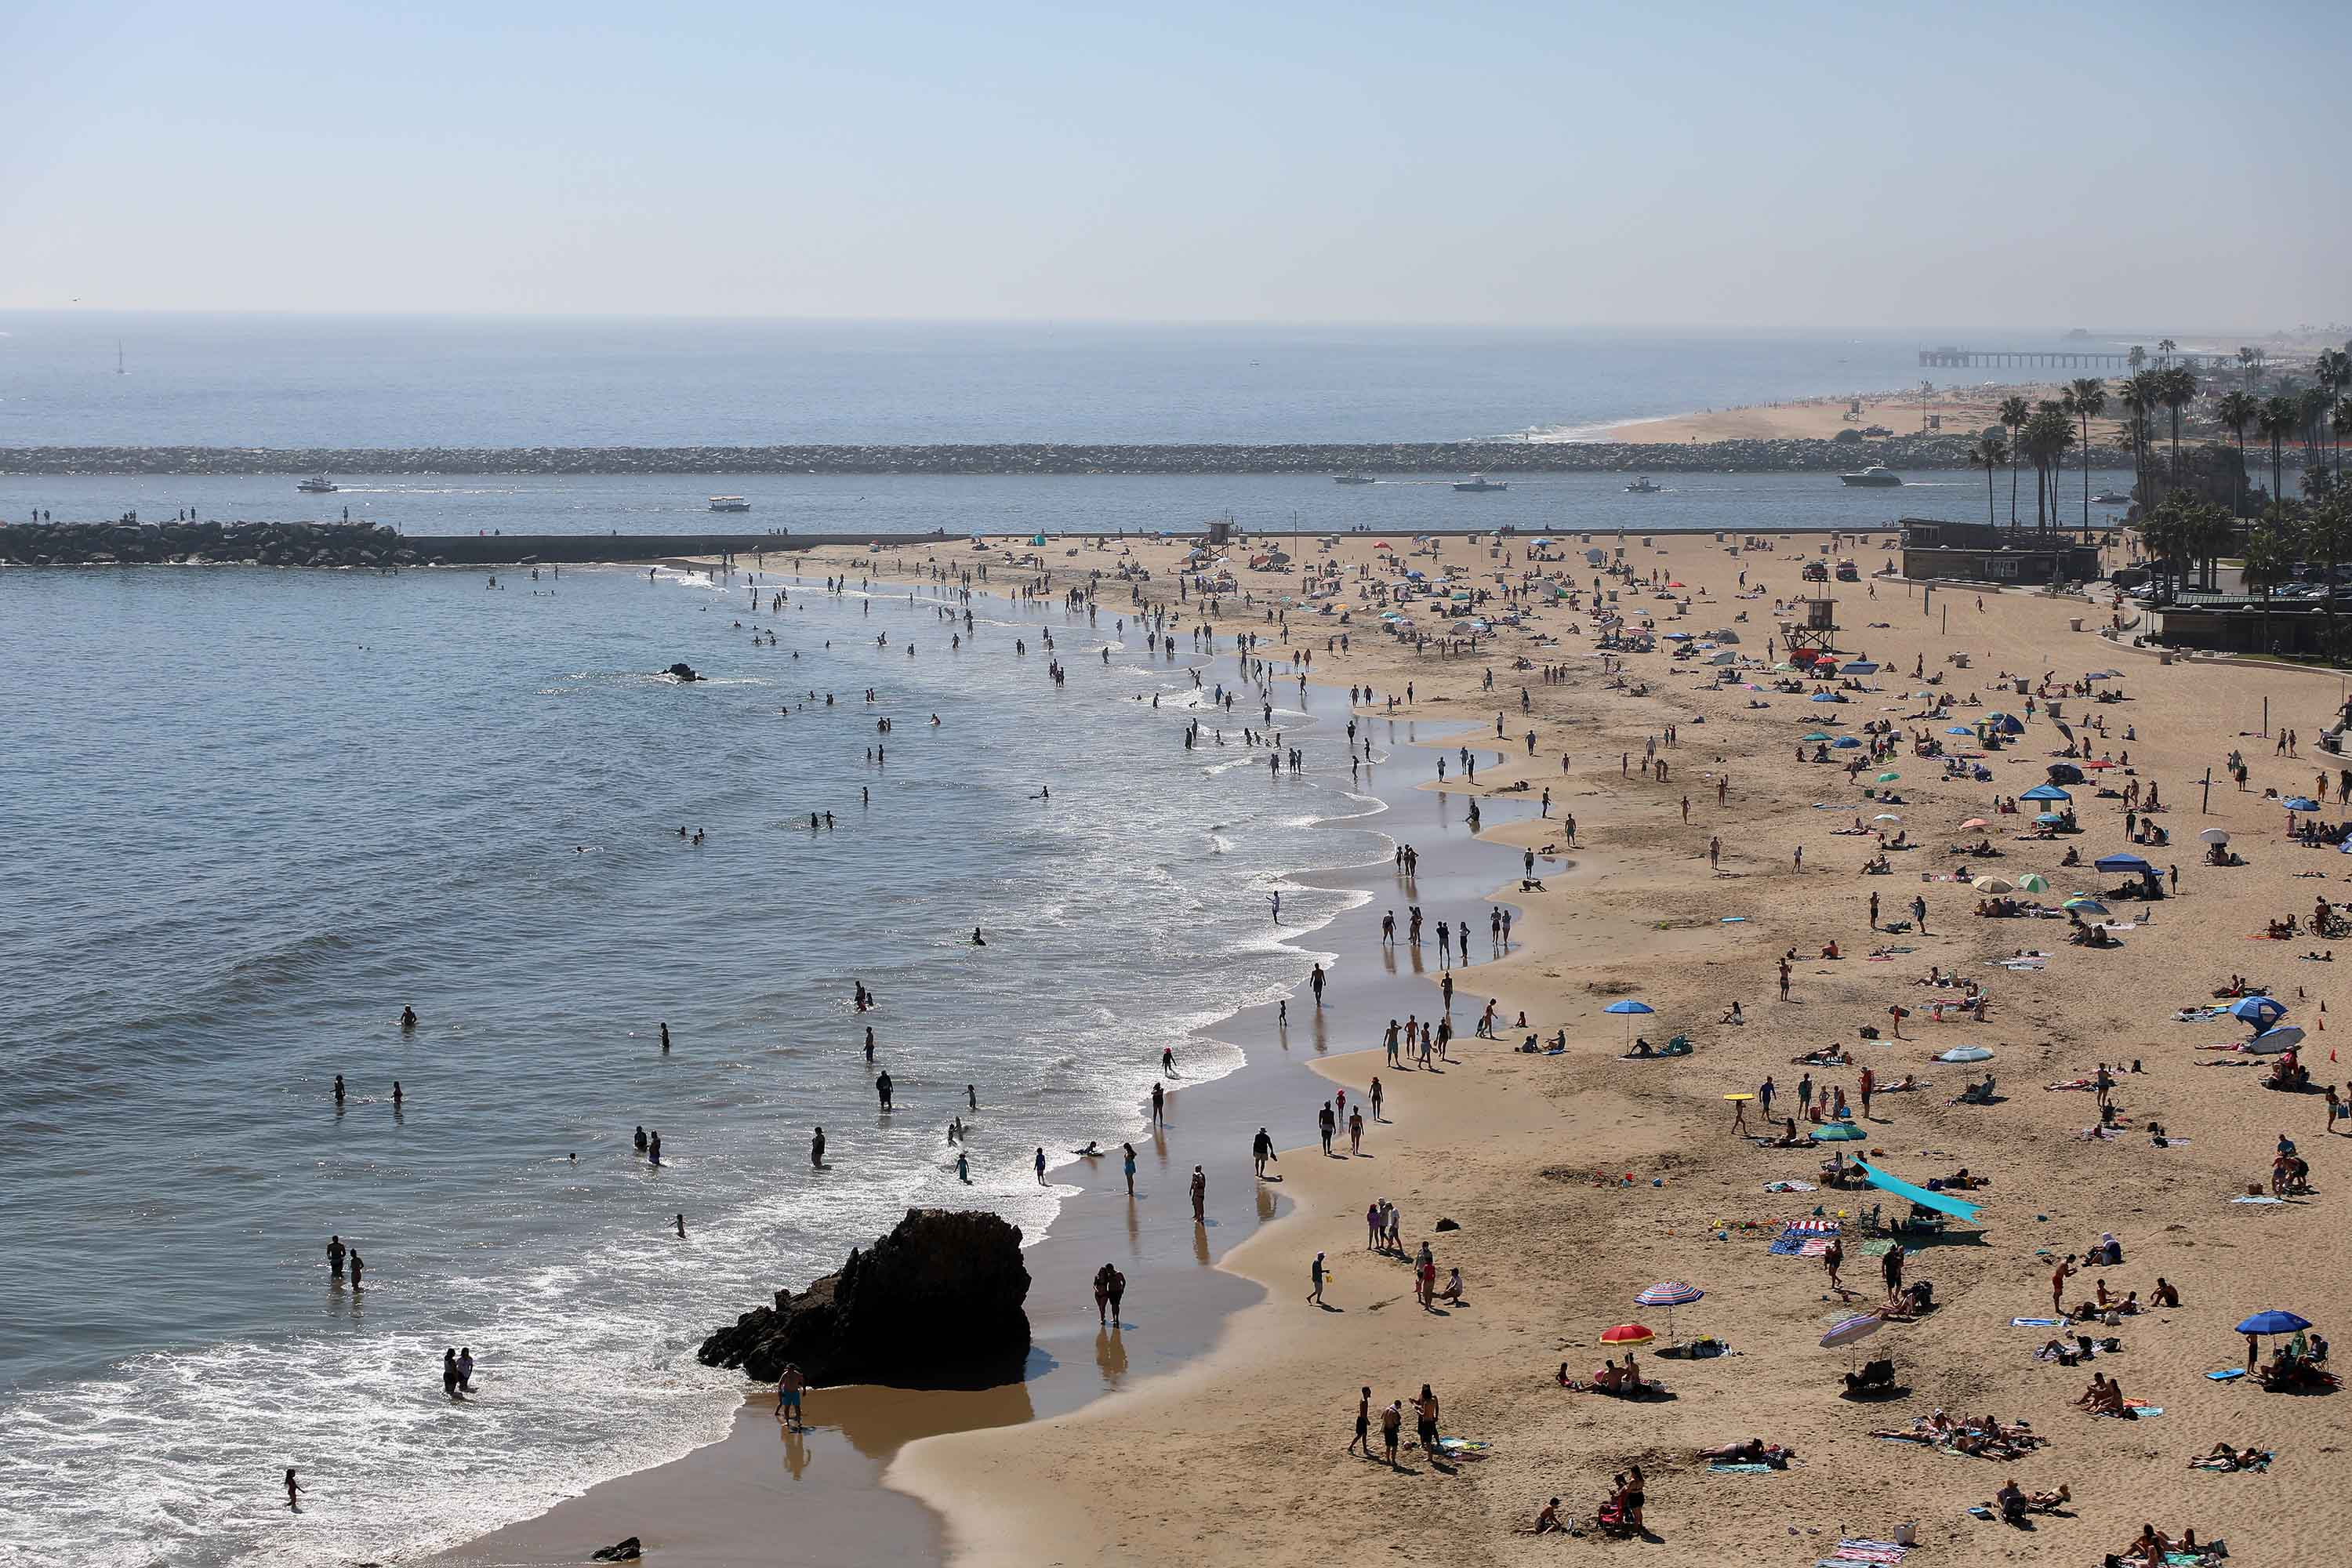 People are seen gathering on the Corona del Mar State Beach in Newport Beach, California on April 25.